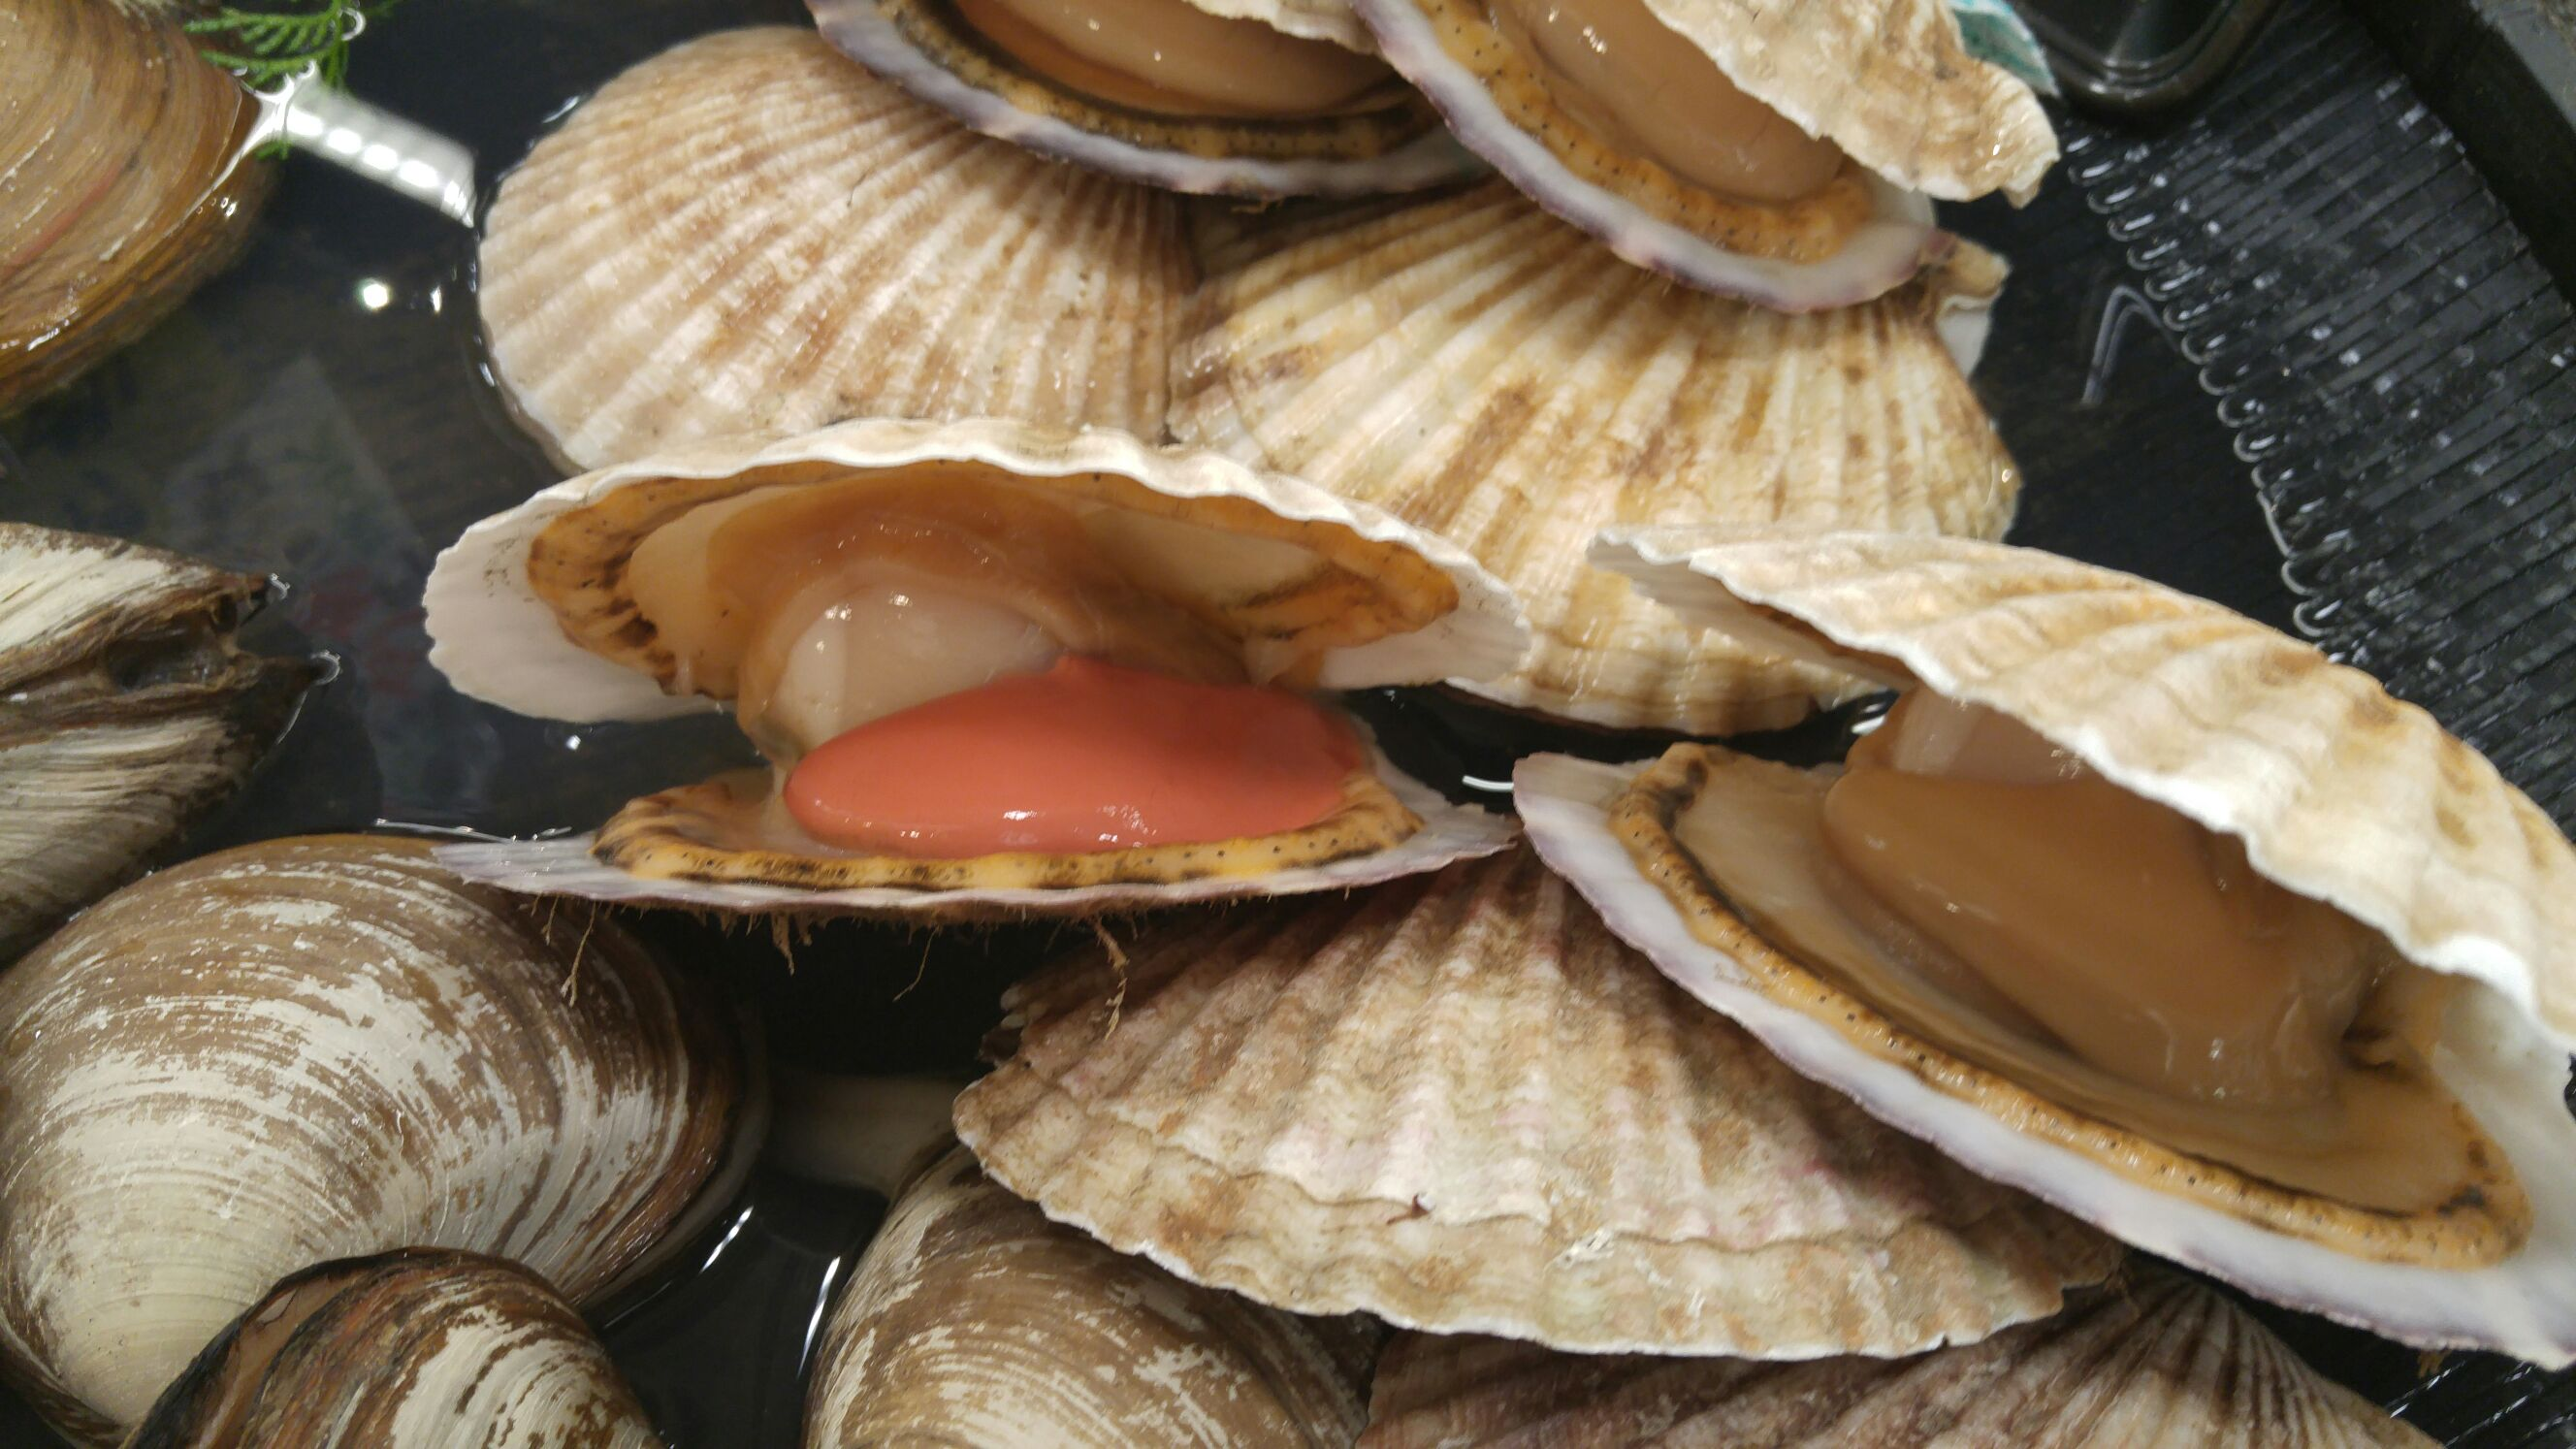 SHIZUOKA GOURMETCategory Archives: ShellfishShellfish at Shizuoka Parche Fish Market!Marine life & Food Stock Preservation: Farm-bred Abalones to be put on the Market soon!Japanese Shellfish Species 12: Surf Clam-Ubagai-姥貝Japanese Shellfish Species 10: Ark Shell-Bloody Clam-Akagai-赤貝Jaoanese Shellfish Species 9: Round Clam-Hen Clam/BakagaiJapanese Shellfish 7: Clam-Hamaguri-蛤Japanese Shellfish 6: Turbo Shells-Sazae-栄螺Posts navigationPopular ArticlesArchivesCategoriesPagesBeerBeer BrewingBlogrollfavourite BlogsFranceGastronomyHealthHollandIrelandJapan Information WebsitesJapanese Cuisine RecipesLiens francaisLife in JapanLiquor ShopsMy favourite websitesMyother Blogs/websitesRecommended sushi restaurants in the World!sakeshochusushiSwedenTravelWhisky日本語のブログ